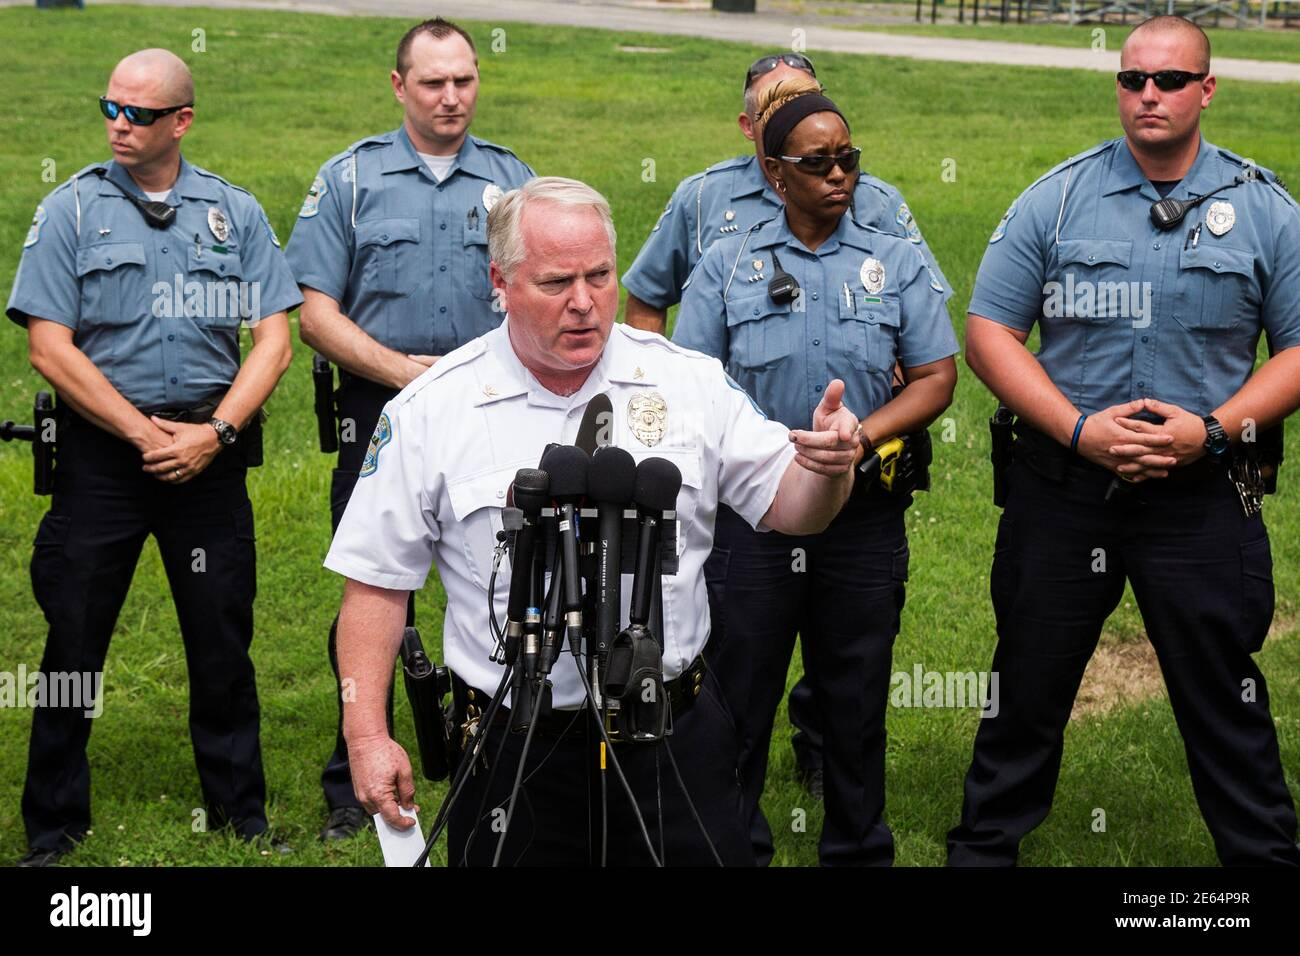 Ferguson Police Chief Thomas Jackson answers questions from the media about his office's handling of the release of information following the shooting of Michael Brown in Ferguson, Missouri August 15, 2014. Picture taken August 15, 2014. REUTERS/Lucas Jackson (UNITED STATES - Tags: CIVIL UNREST CRIME LAW POLITICS) Foto de stock